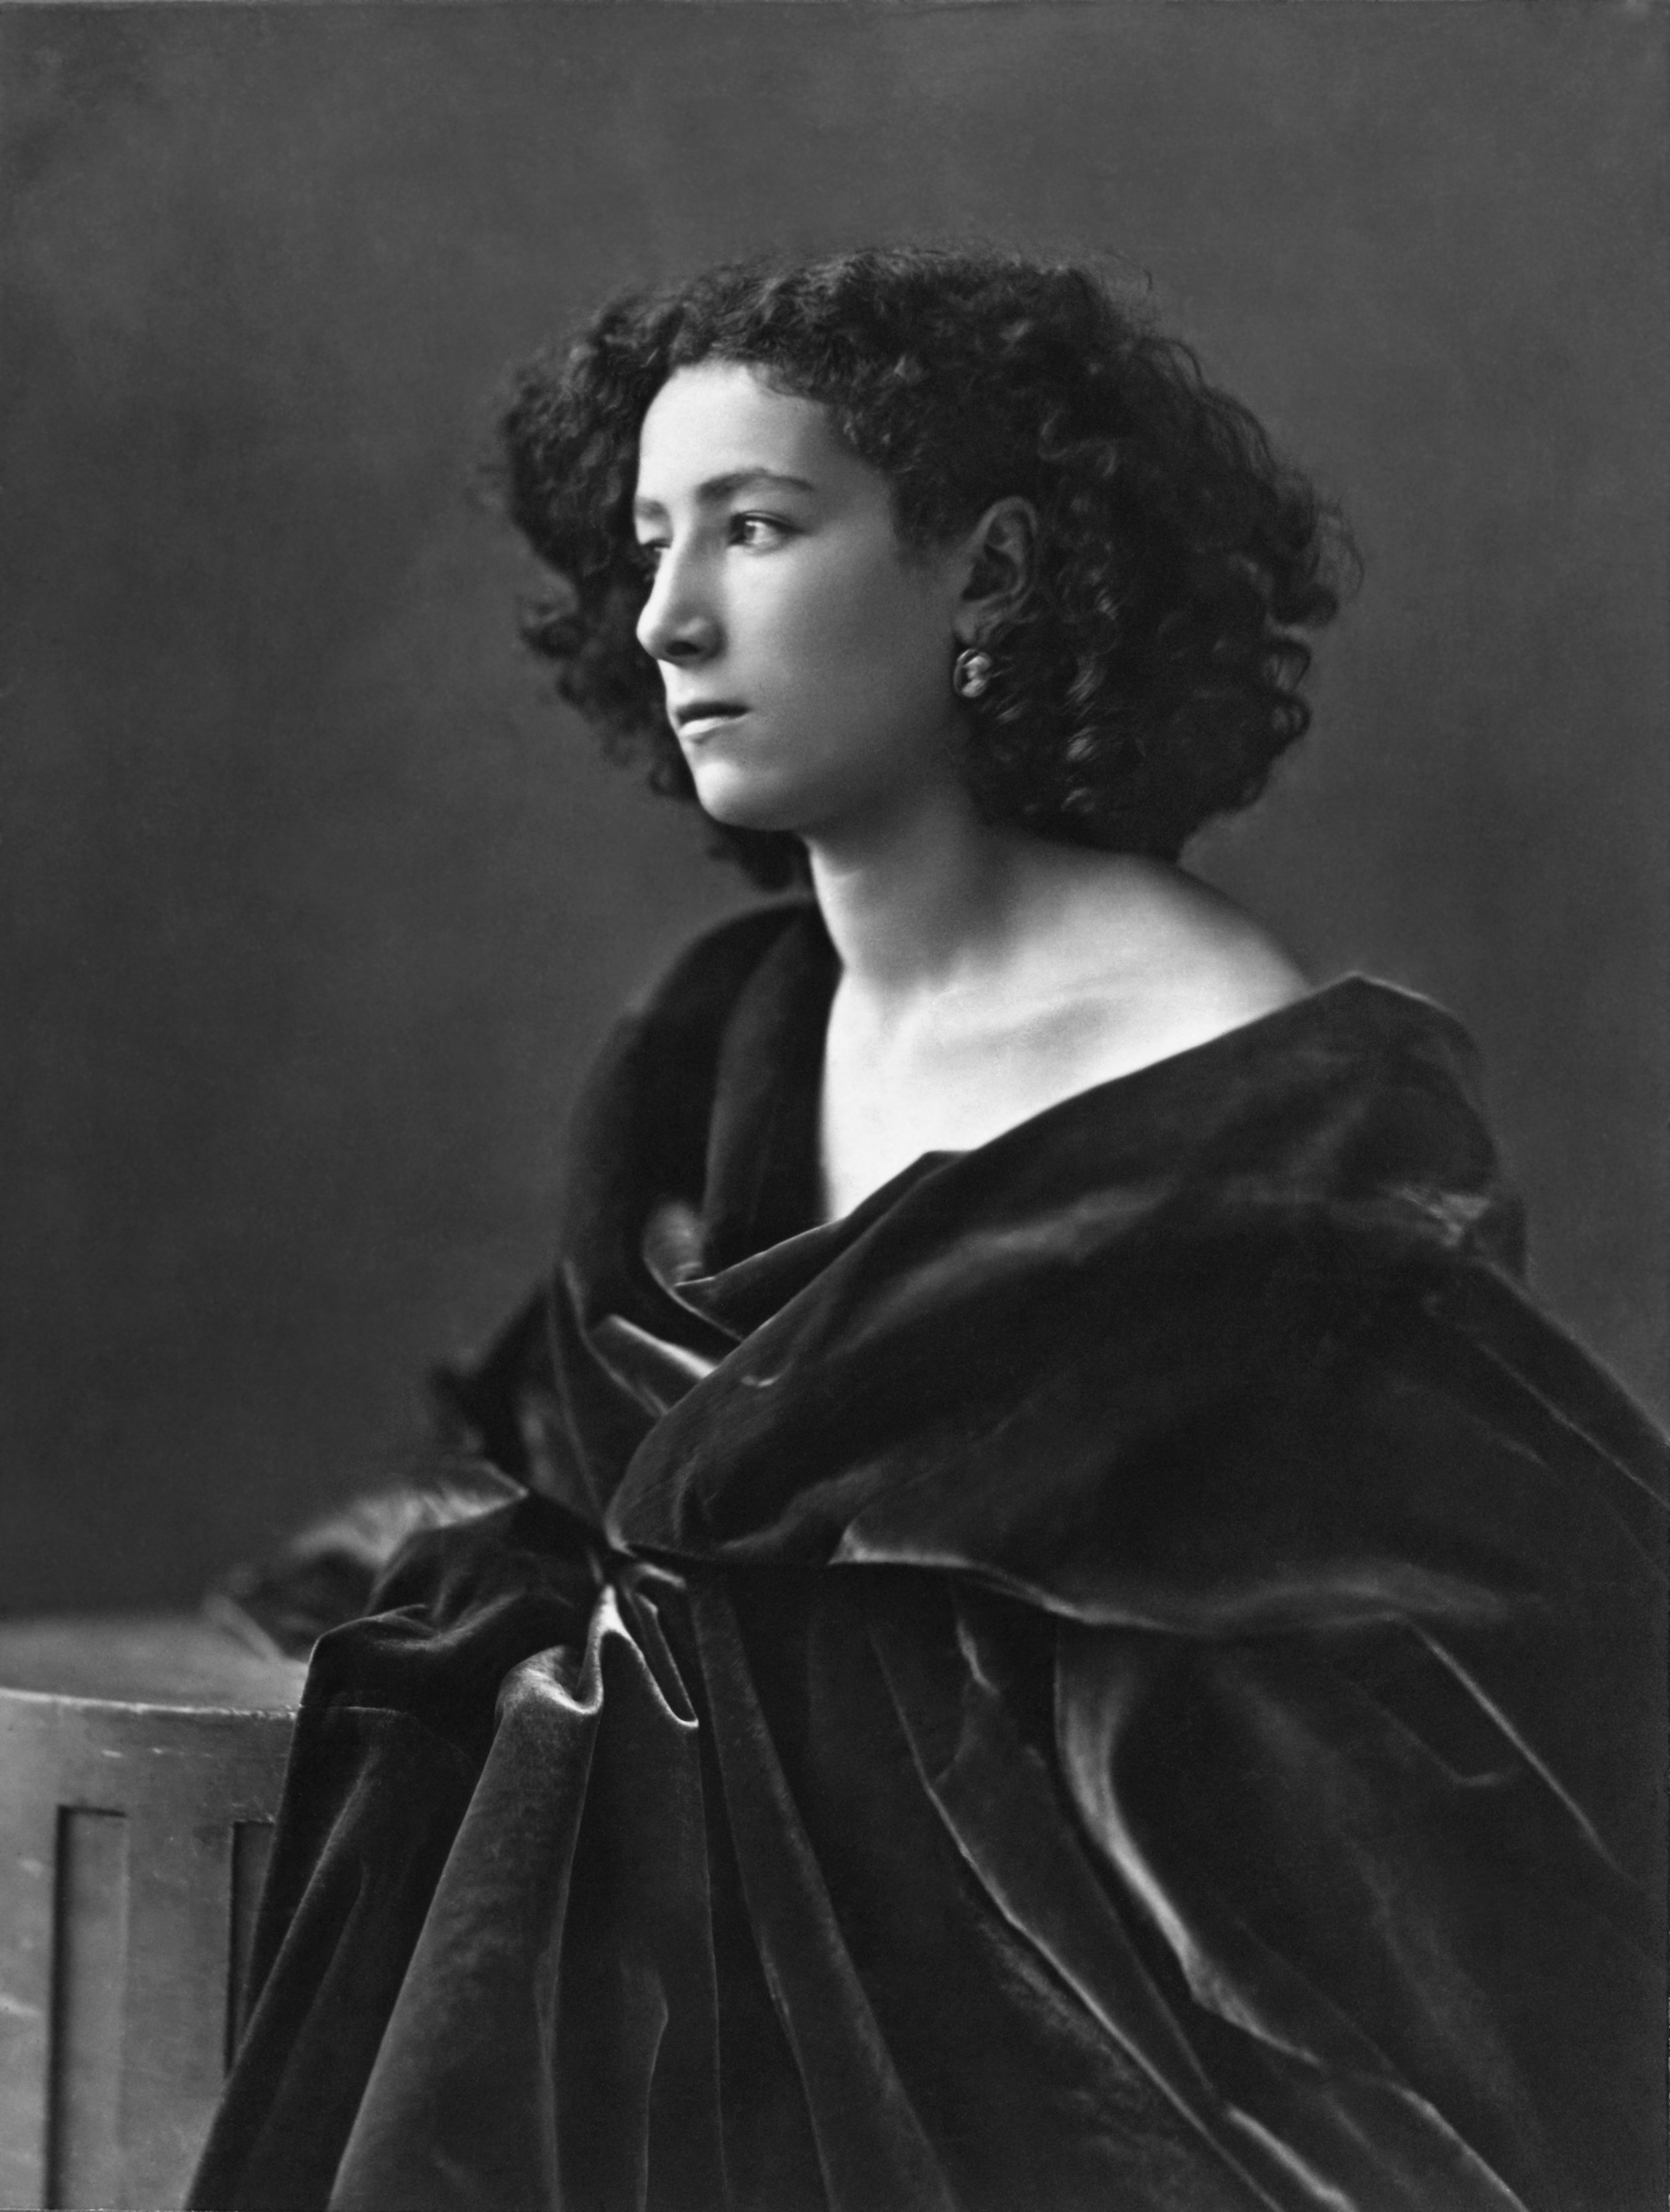 Sarah Bernhardt, 1864 by Nadar. Photo courtesy of Getty Images